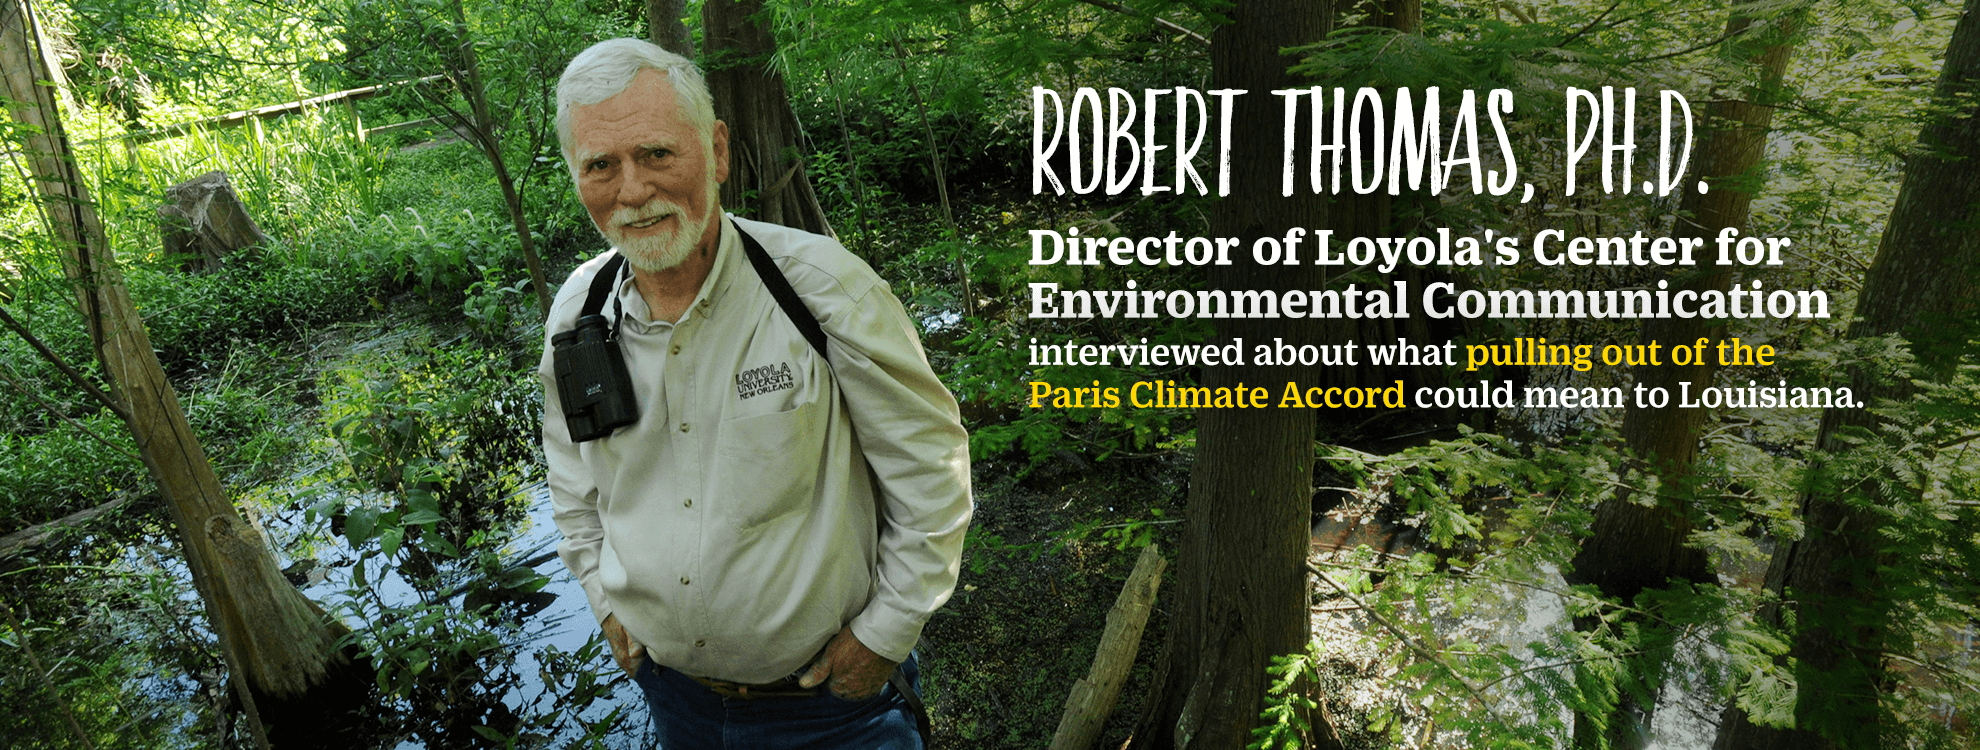 Dr. Robert Thomas, Ph.D. interviewed about what pulling out of the Paris Climate Accord could mean to Louisiana - Loyola University New Orleans